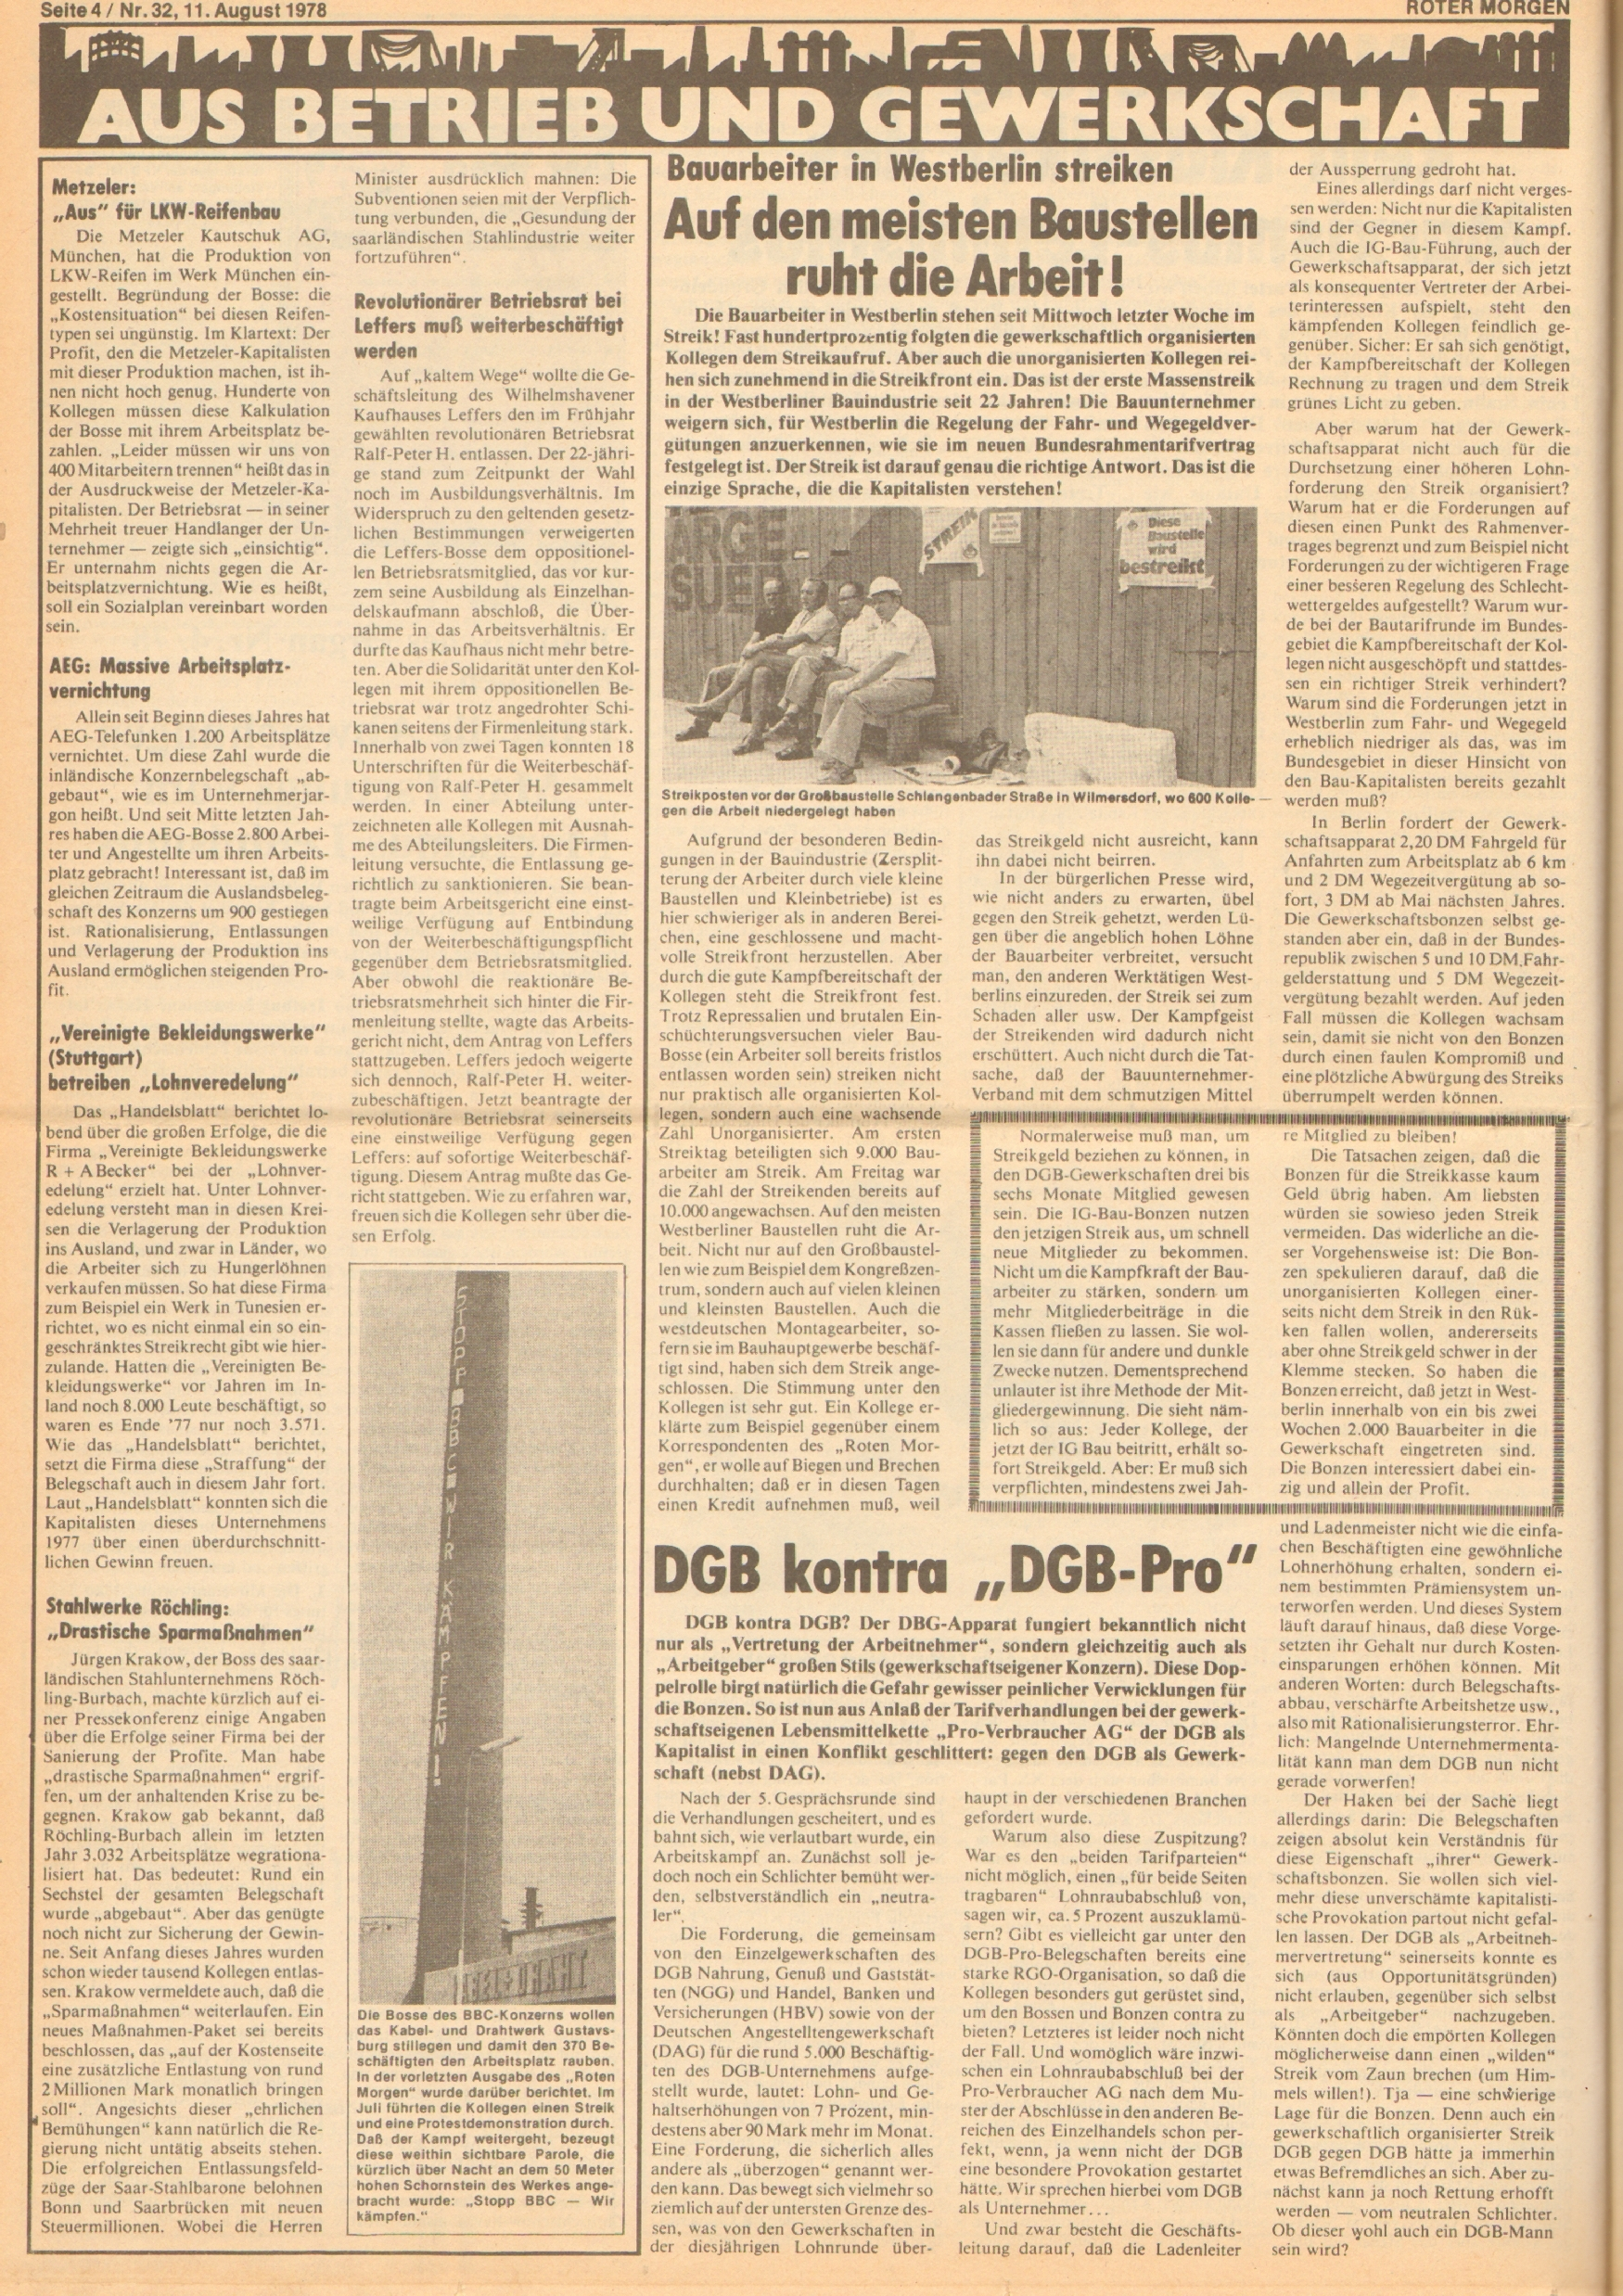 Roter Morgen, 12. Jg., 11. August 1978, Nr. 32, Seite 4